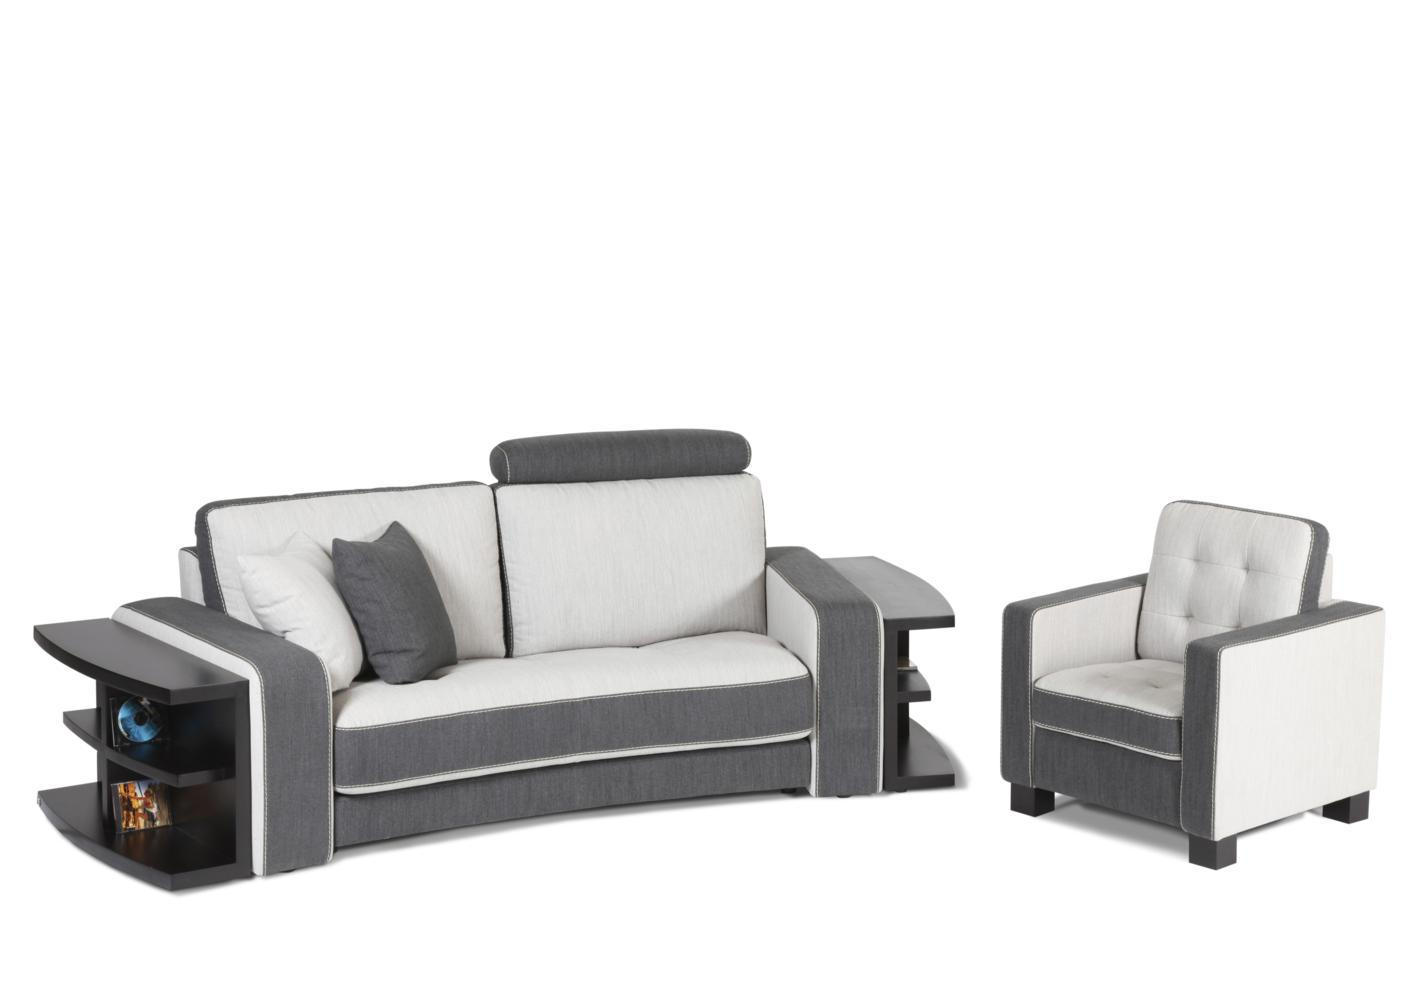 acheter votre canap contemporain bicolore gris et blanc. Black Bedroom Furniture Sets. Home Design Ideas